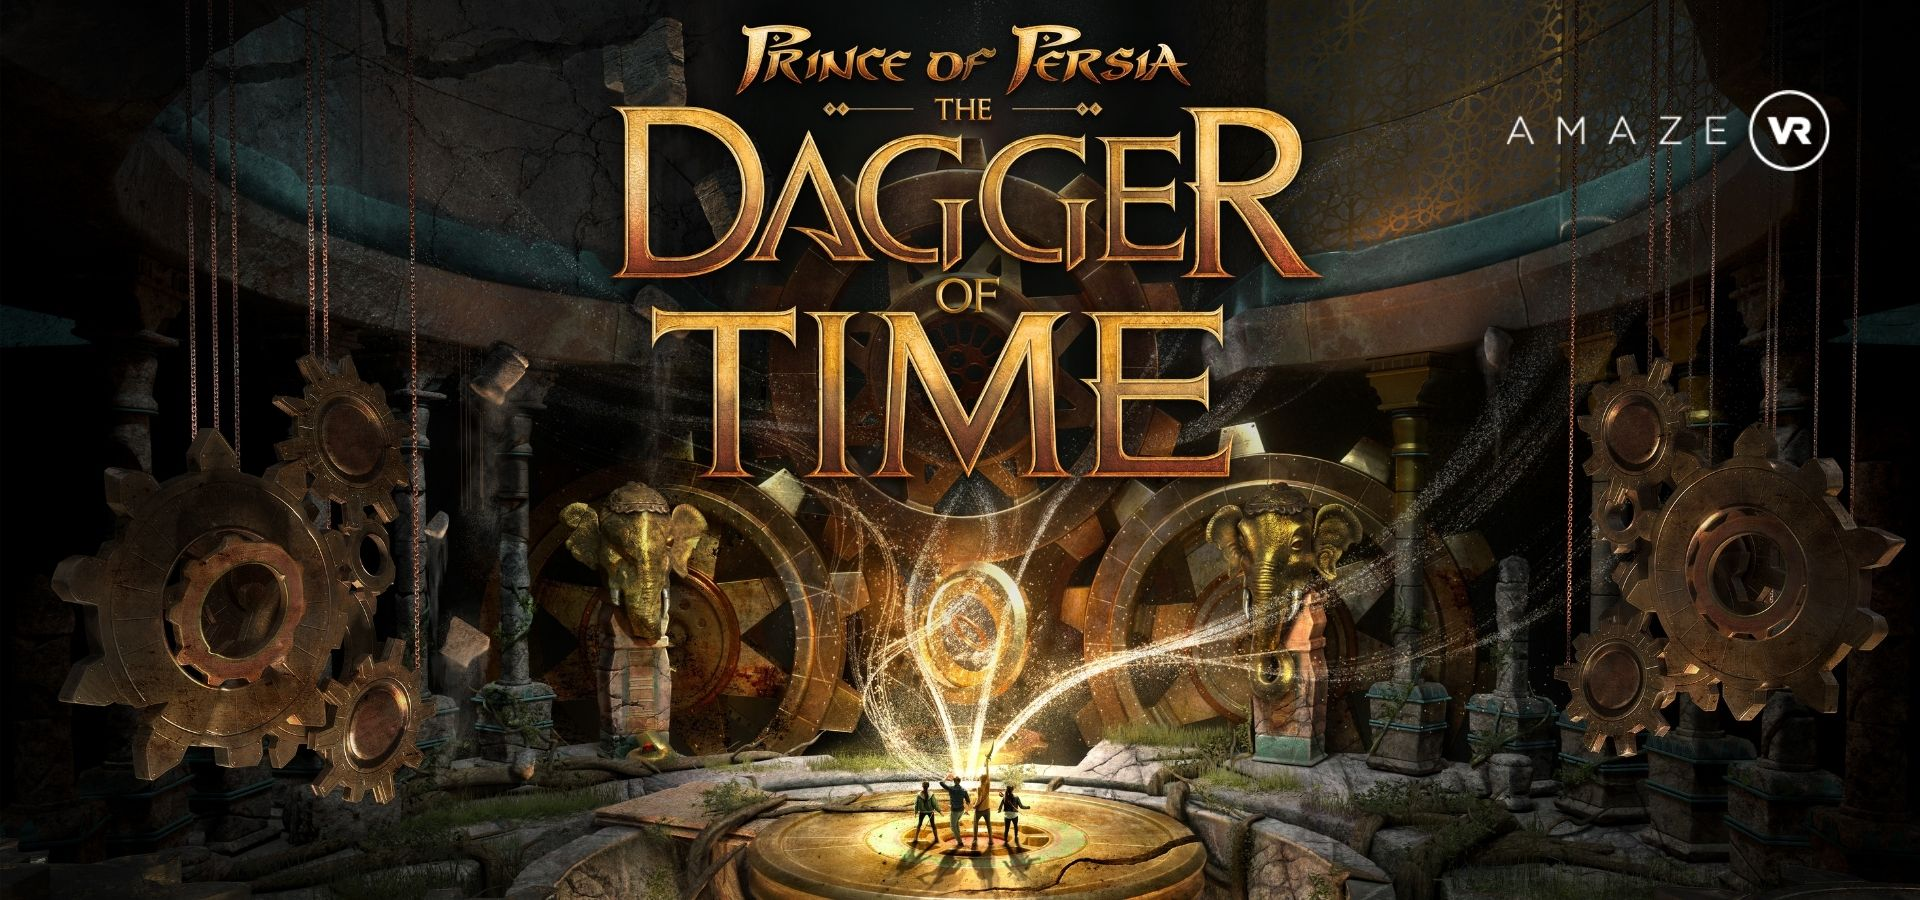 the dagger of time prince of persia